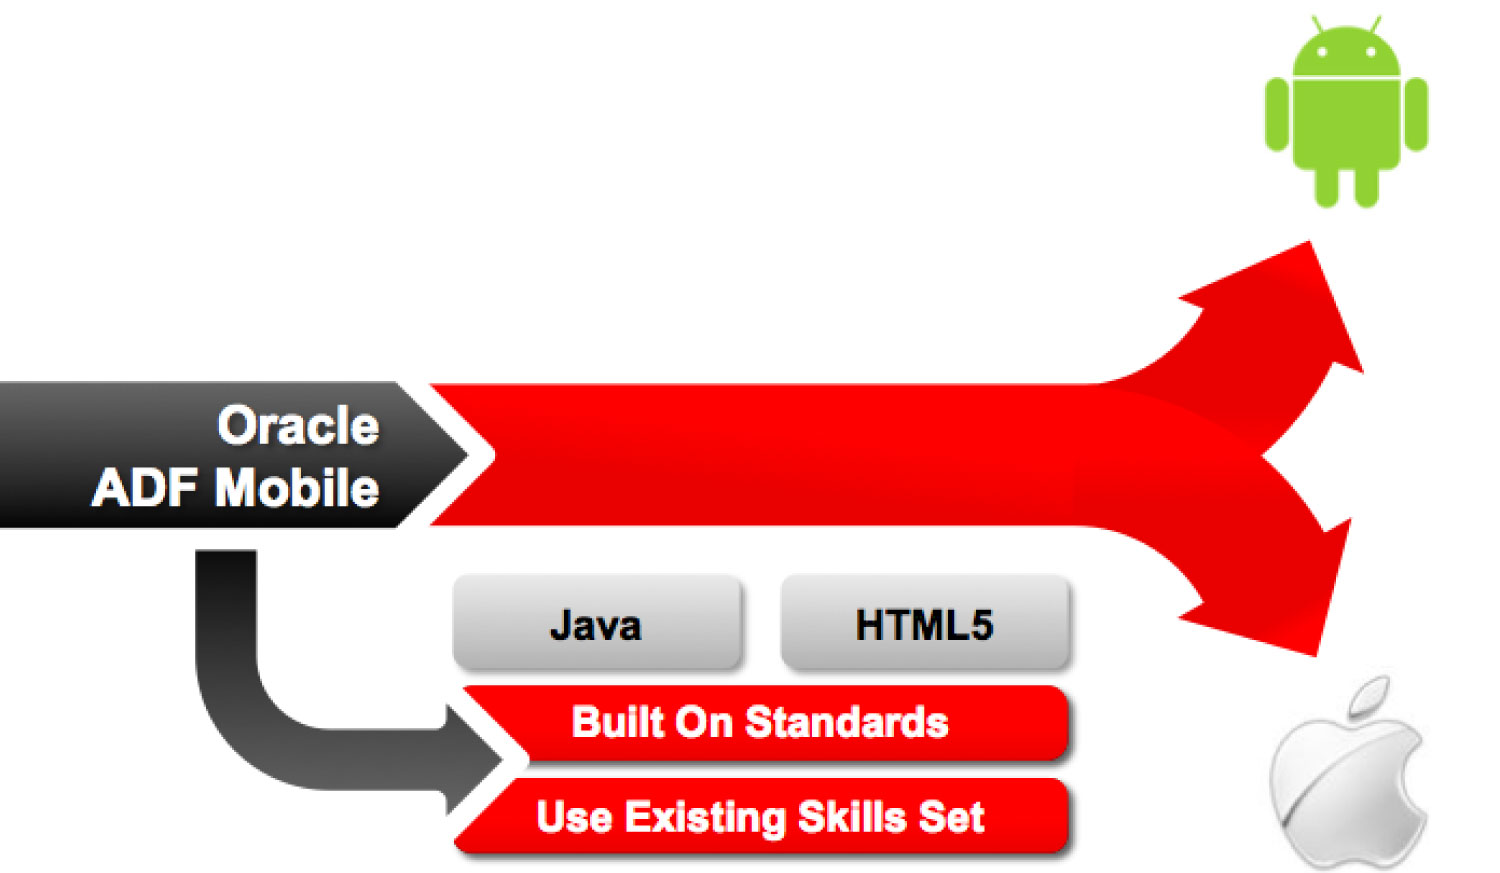 Oracle Mobile Application Framework: Write Once, Deploy to Many